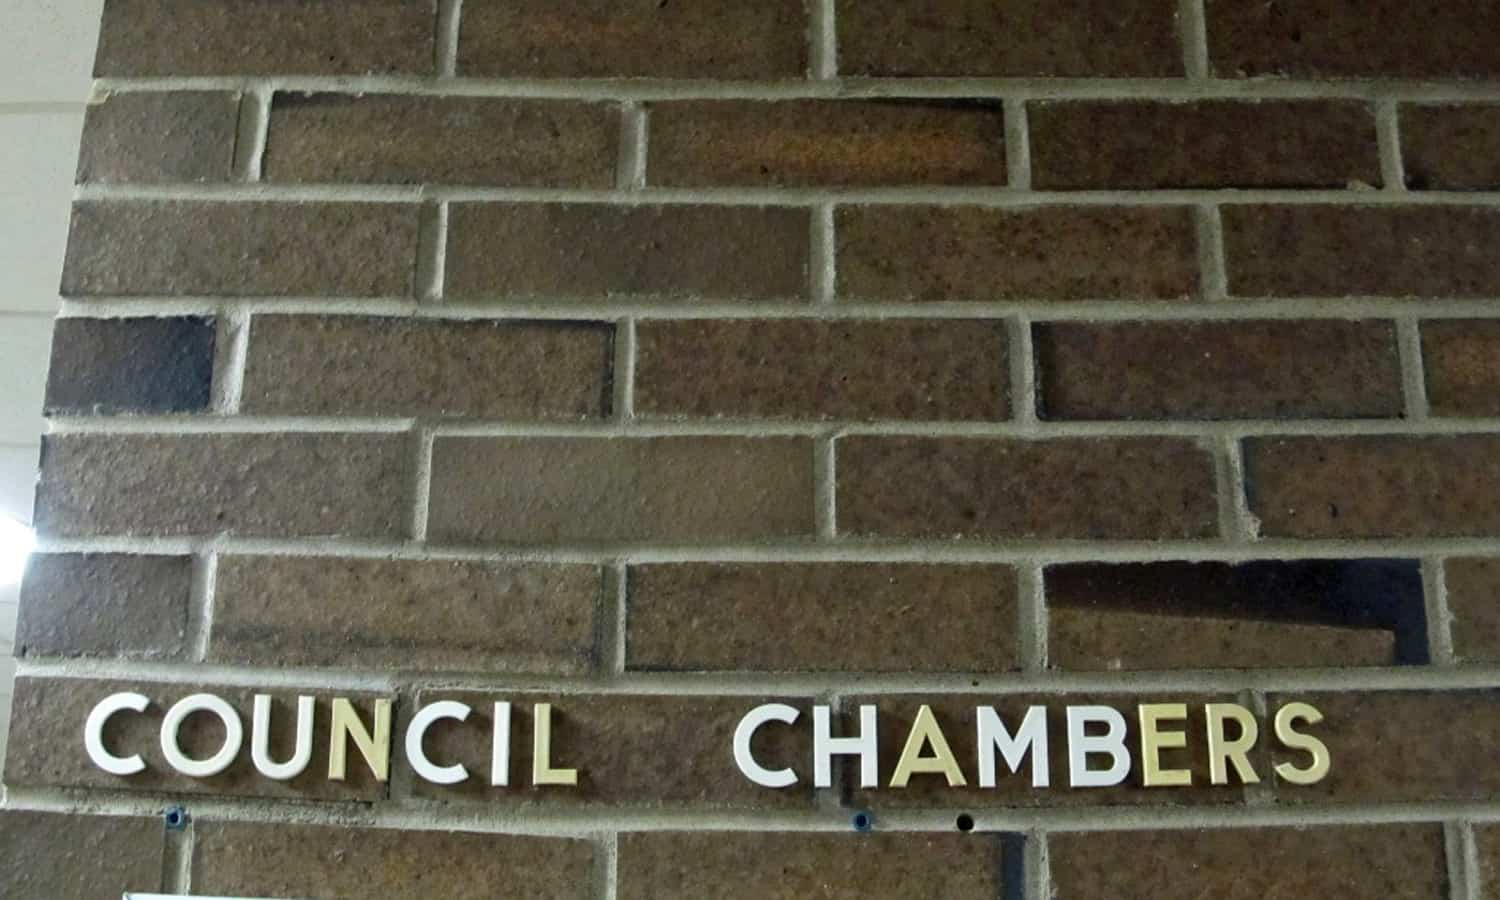 Signage leading to council chamber